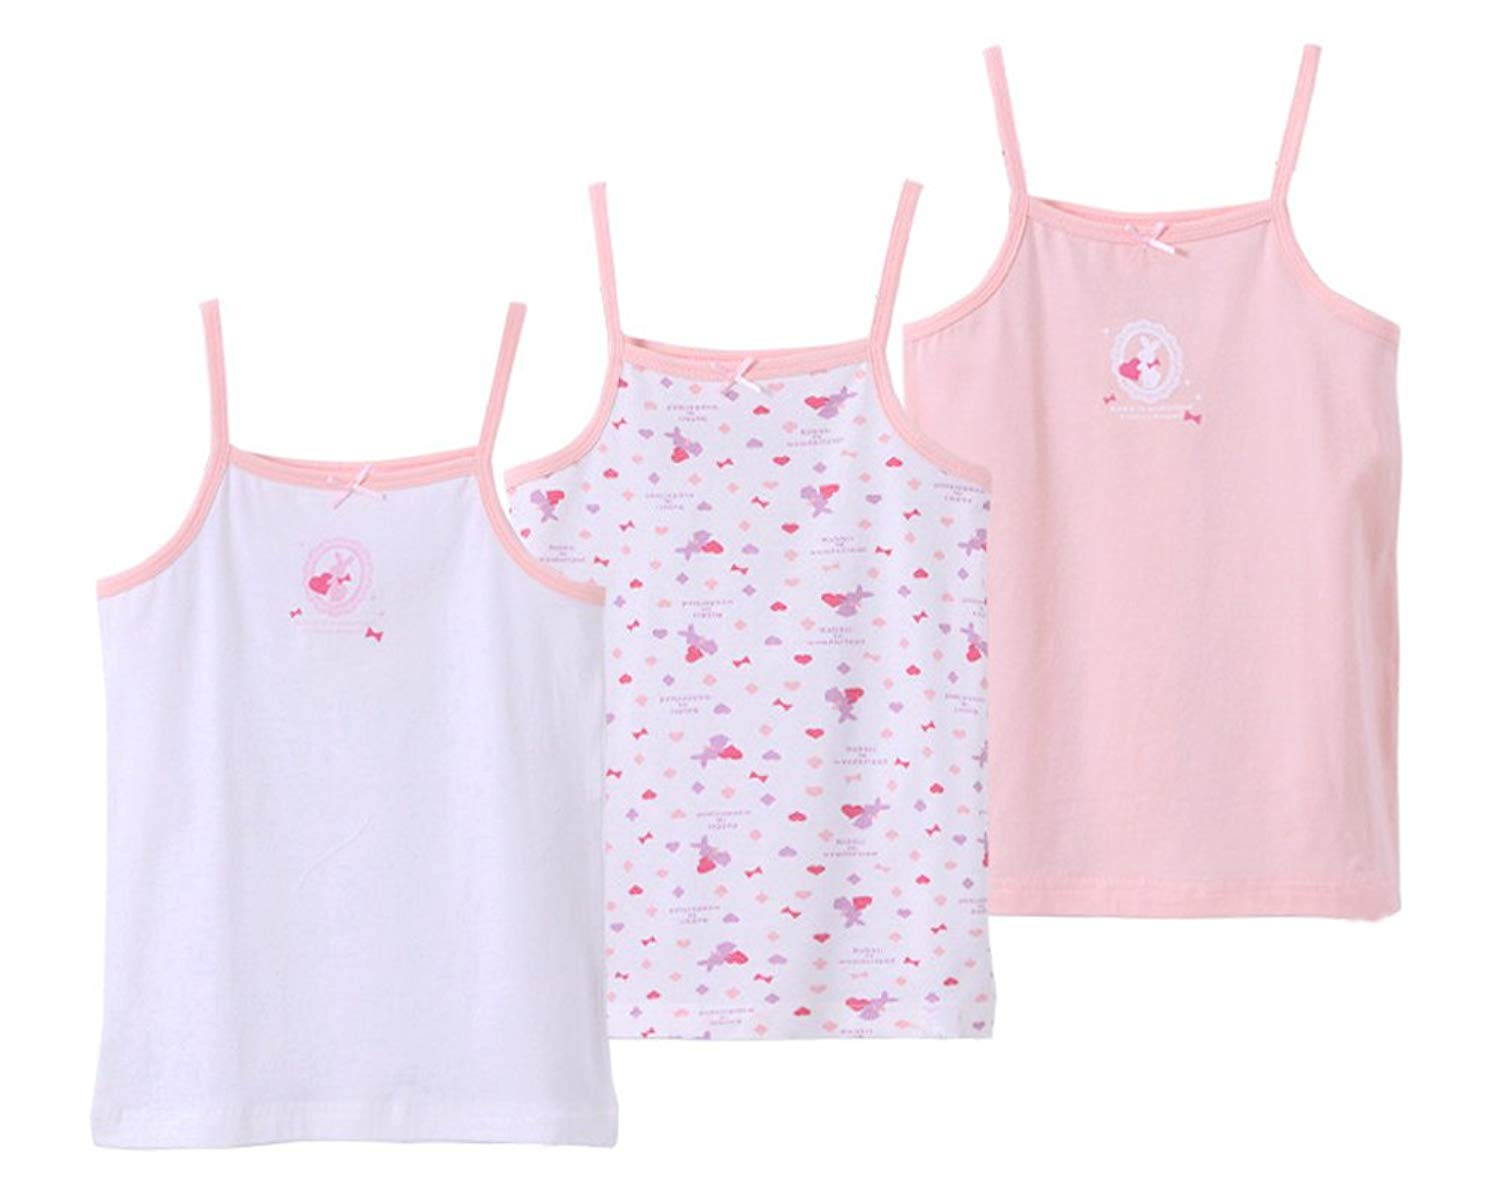 3e29022ae5d34 Get Quotations · CHUNG Toddler Girls Print Cotton Super Soft Assorted Cami  Undershirts Tank Top 3 Pack